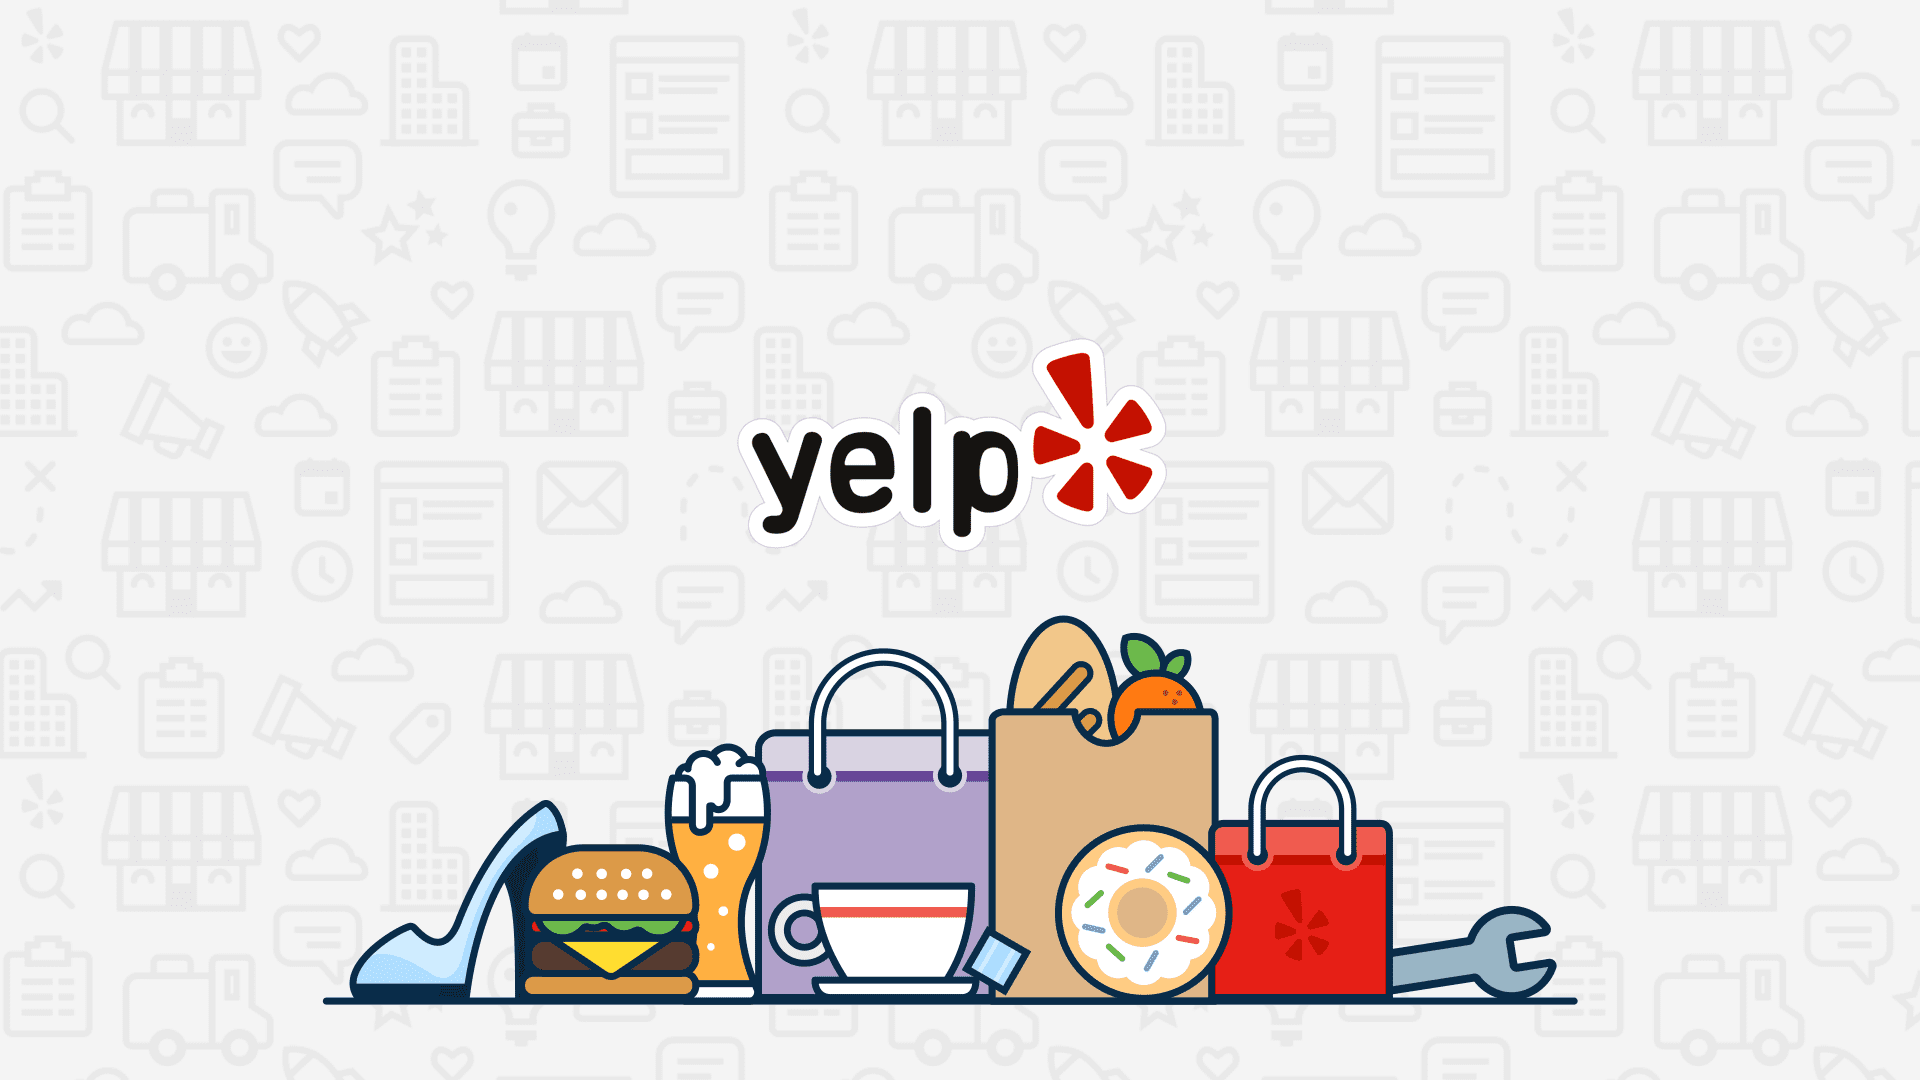 How to change your name on Yelp